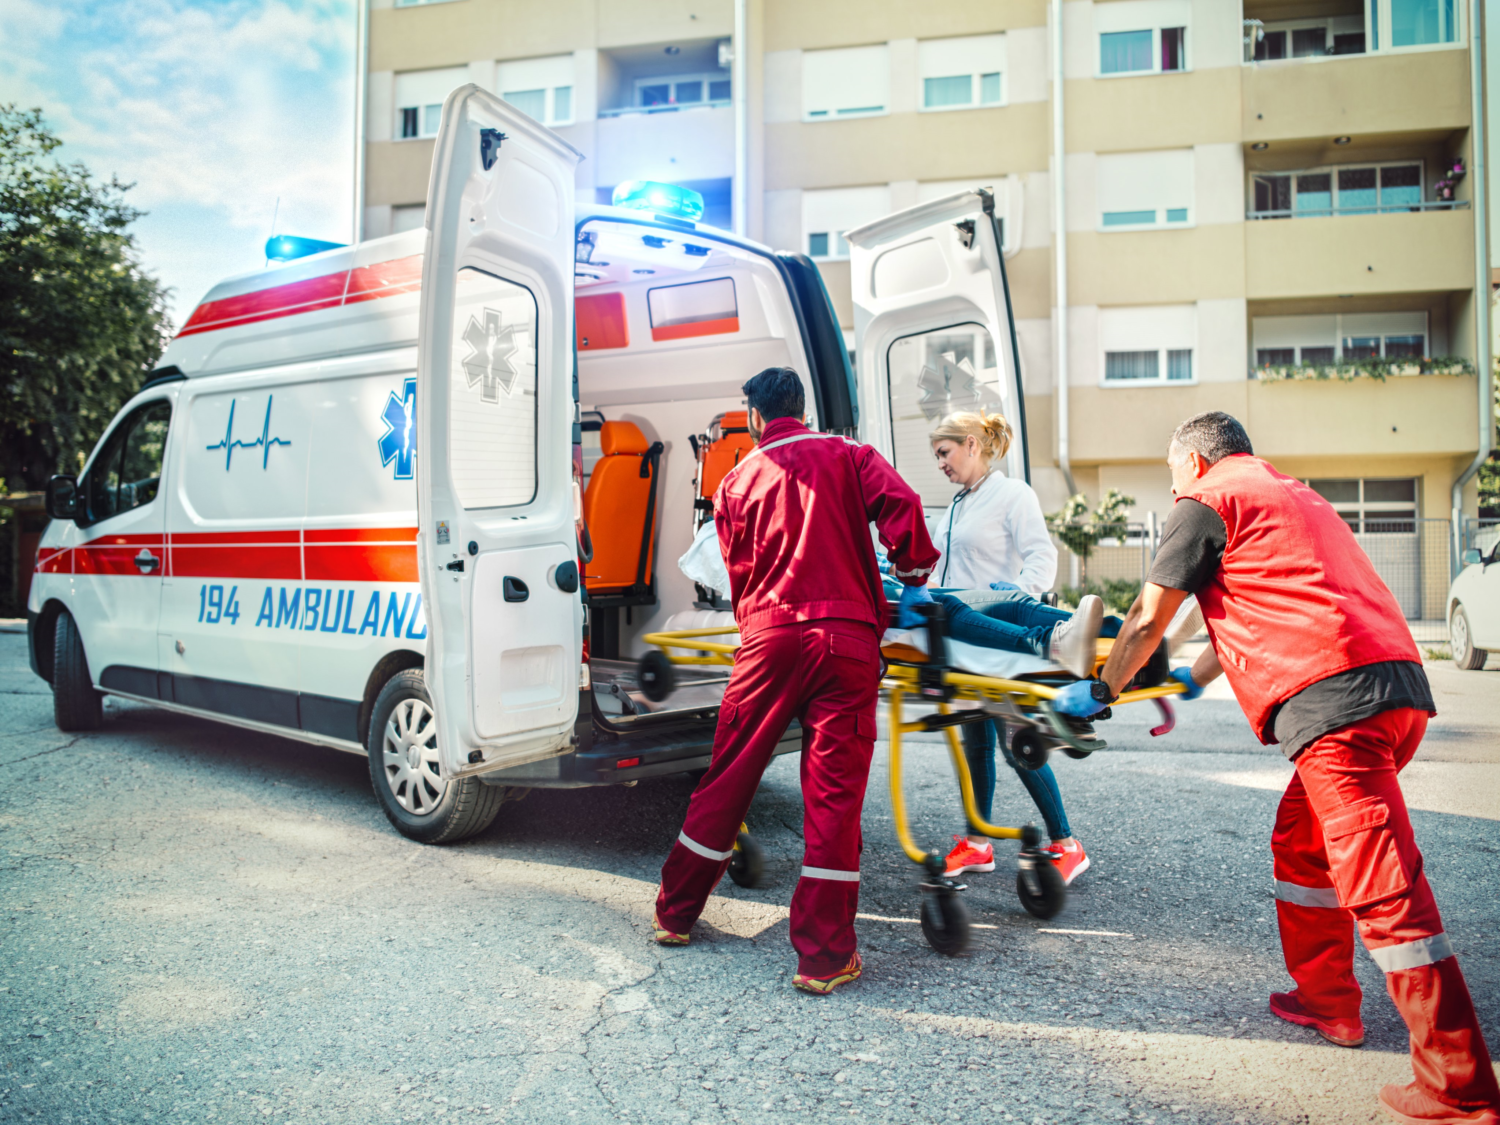 MindRhythm Raises $5M for Stroke Triage Medical Device in EMS Settings